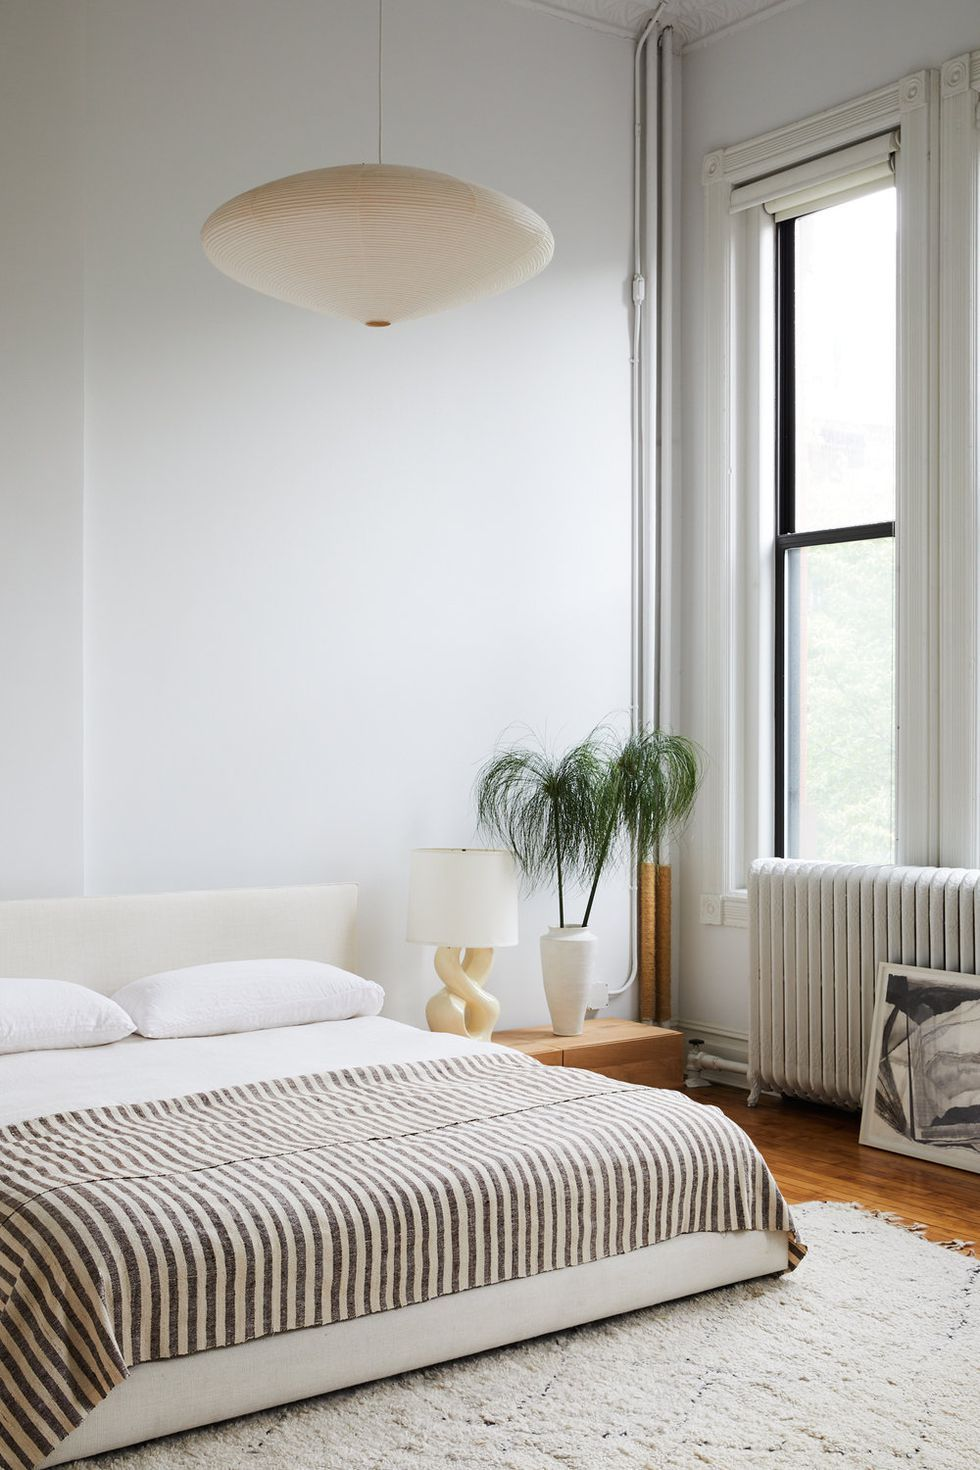 What Is Minimalism, Exactly?